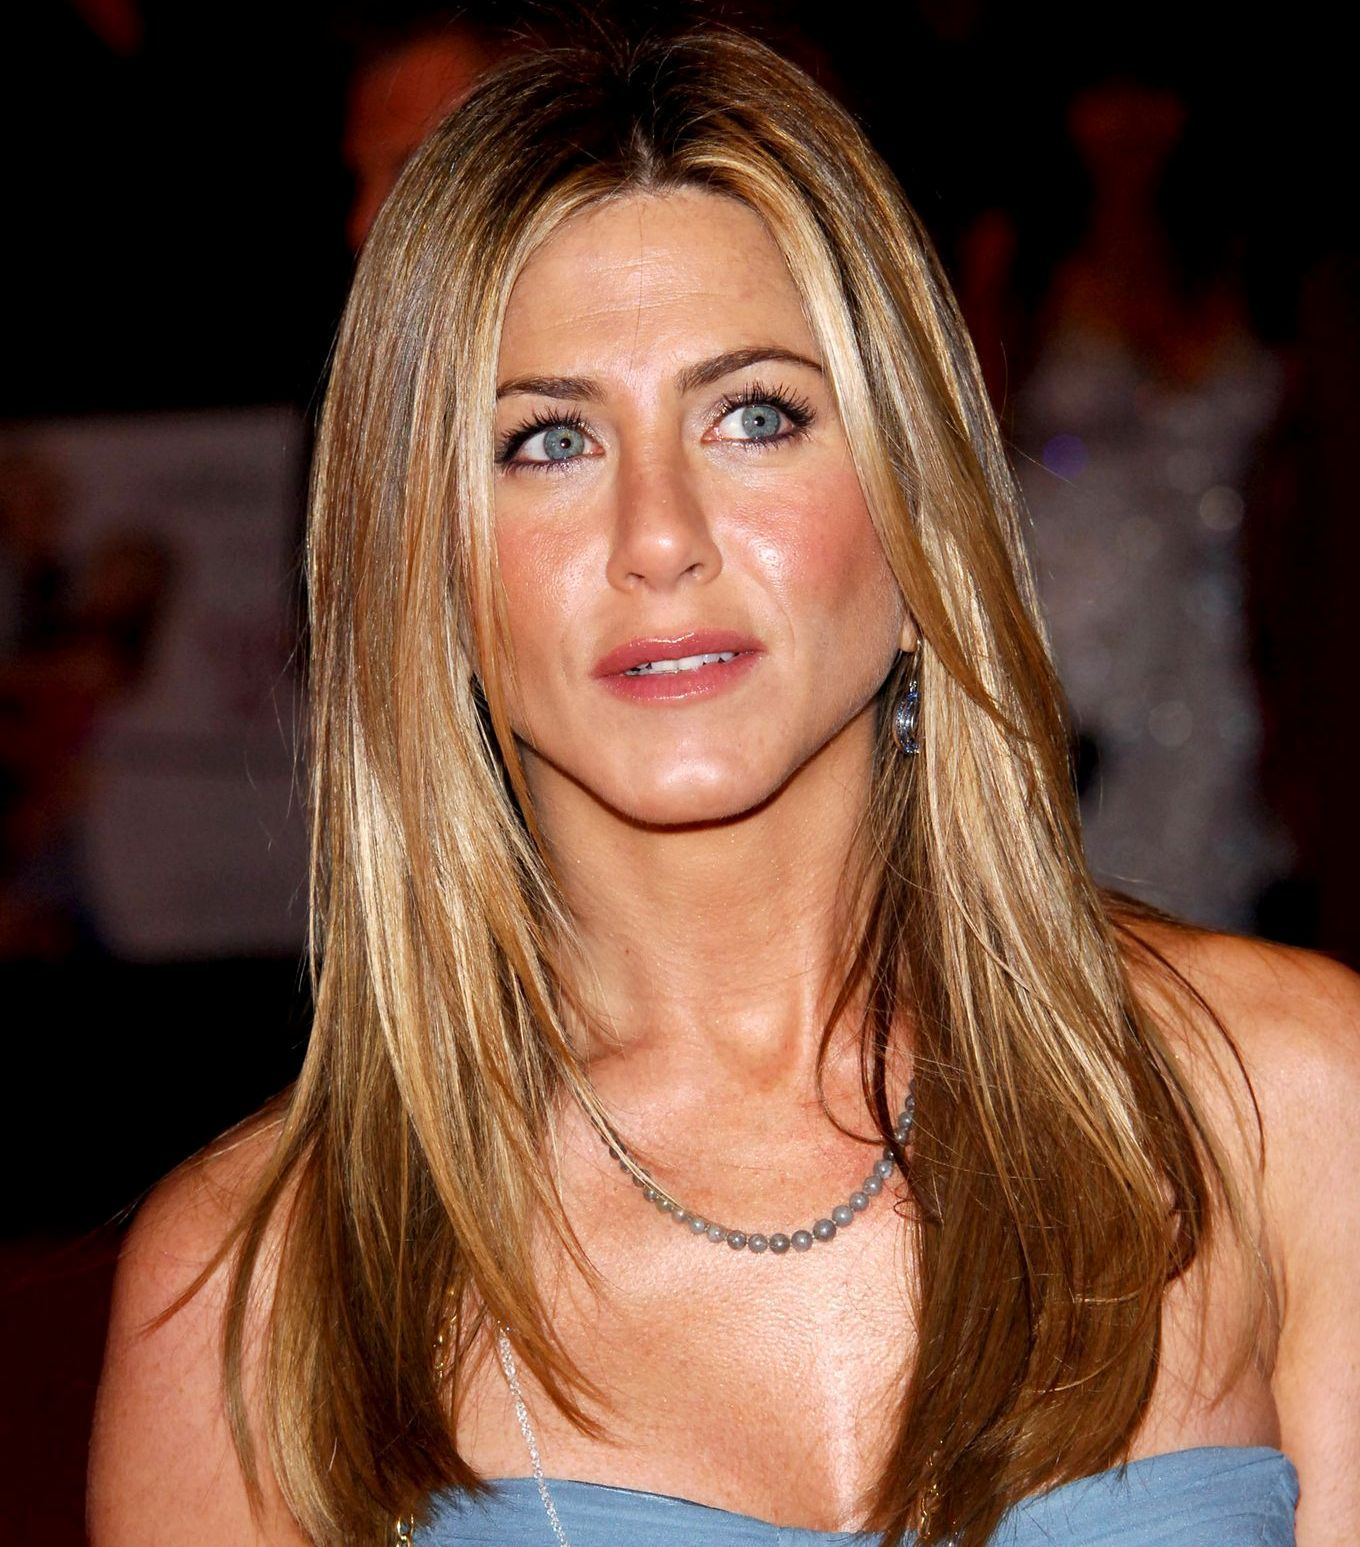 Medium straight hairstyle jennifer aniston a womanus hair is her